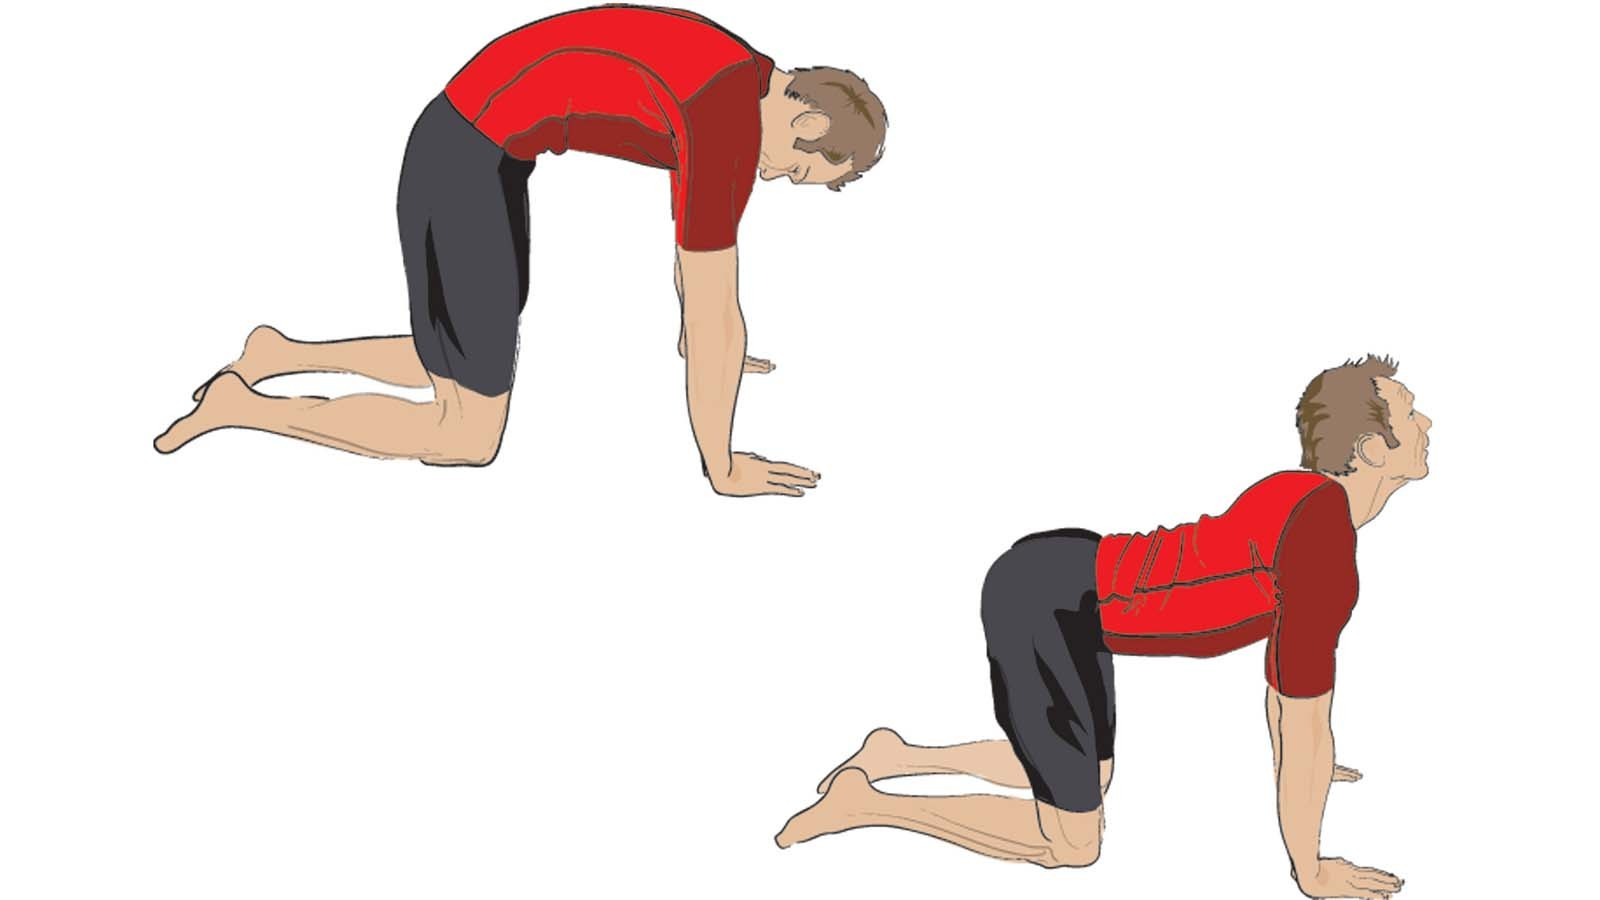 Get on all fours and curve your back upwards and downwards to perform the cat